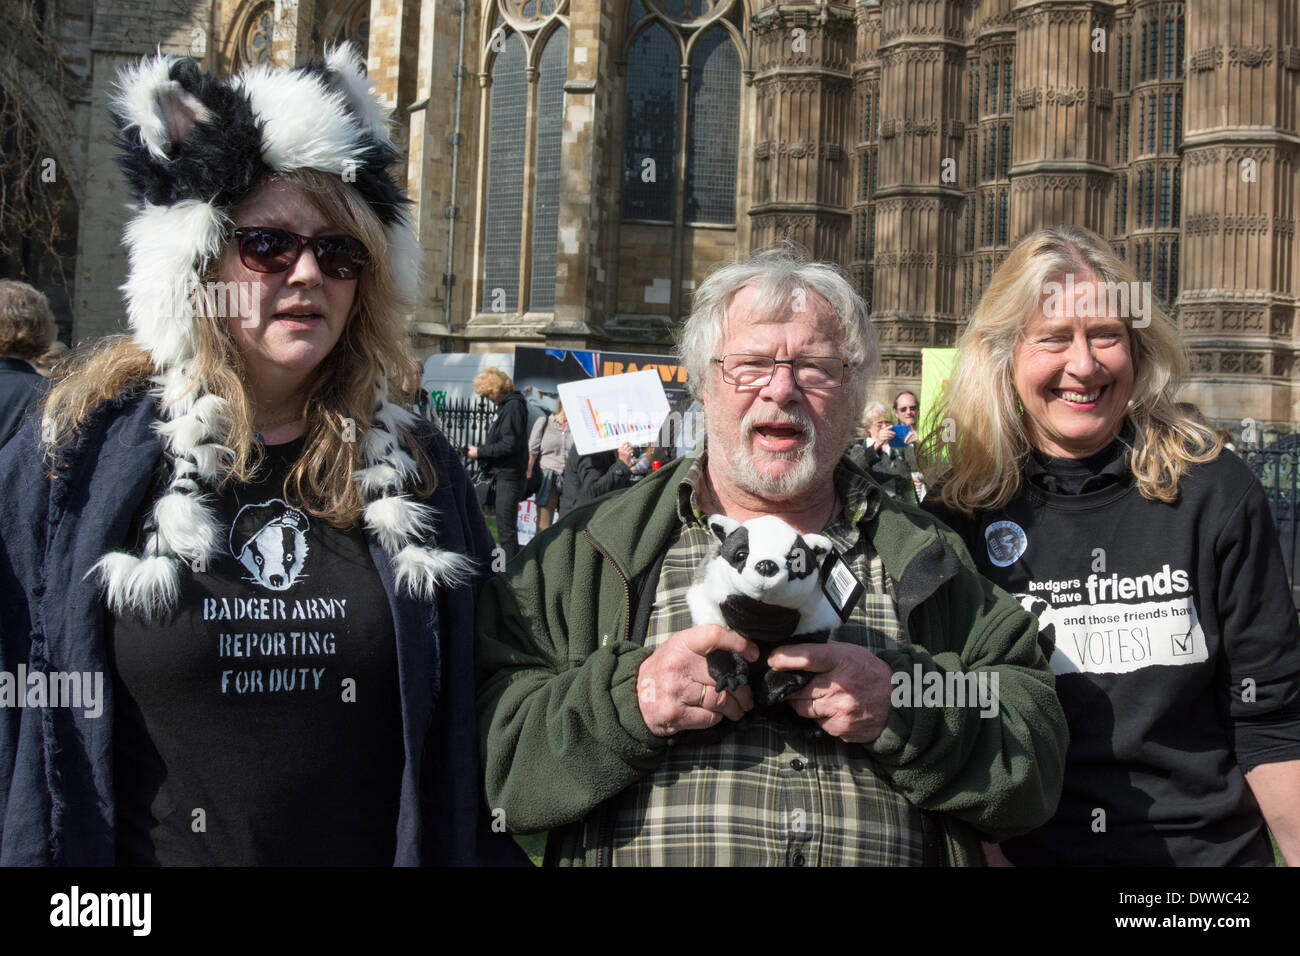 London, UK. 13th Mar, 2014. TV personality and wildlife expert Bill Oddie joins protesters outside Westminster while a parliamentary debate on the controversial badger cull takes place inside the house of commons. Badgers have been linked to the spread of bovine tuberculosis in cattle and experimental culls of badgers were carried out in 2013 in an attempt to stop the spread of the disease. Anti-cull protestors have claimed that the cull is inefficient, inhumane and scientifically flawed. Credit:  Patricia Phillips/Alamy Live News - Stock Image